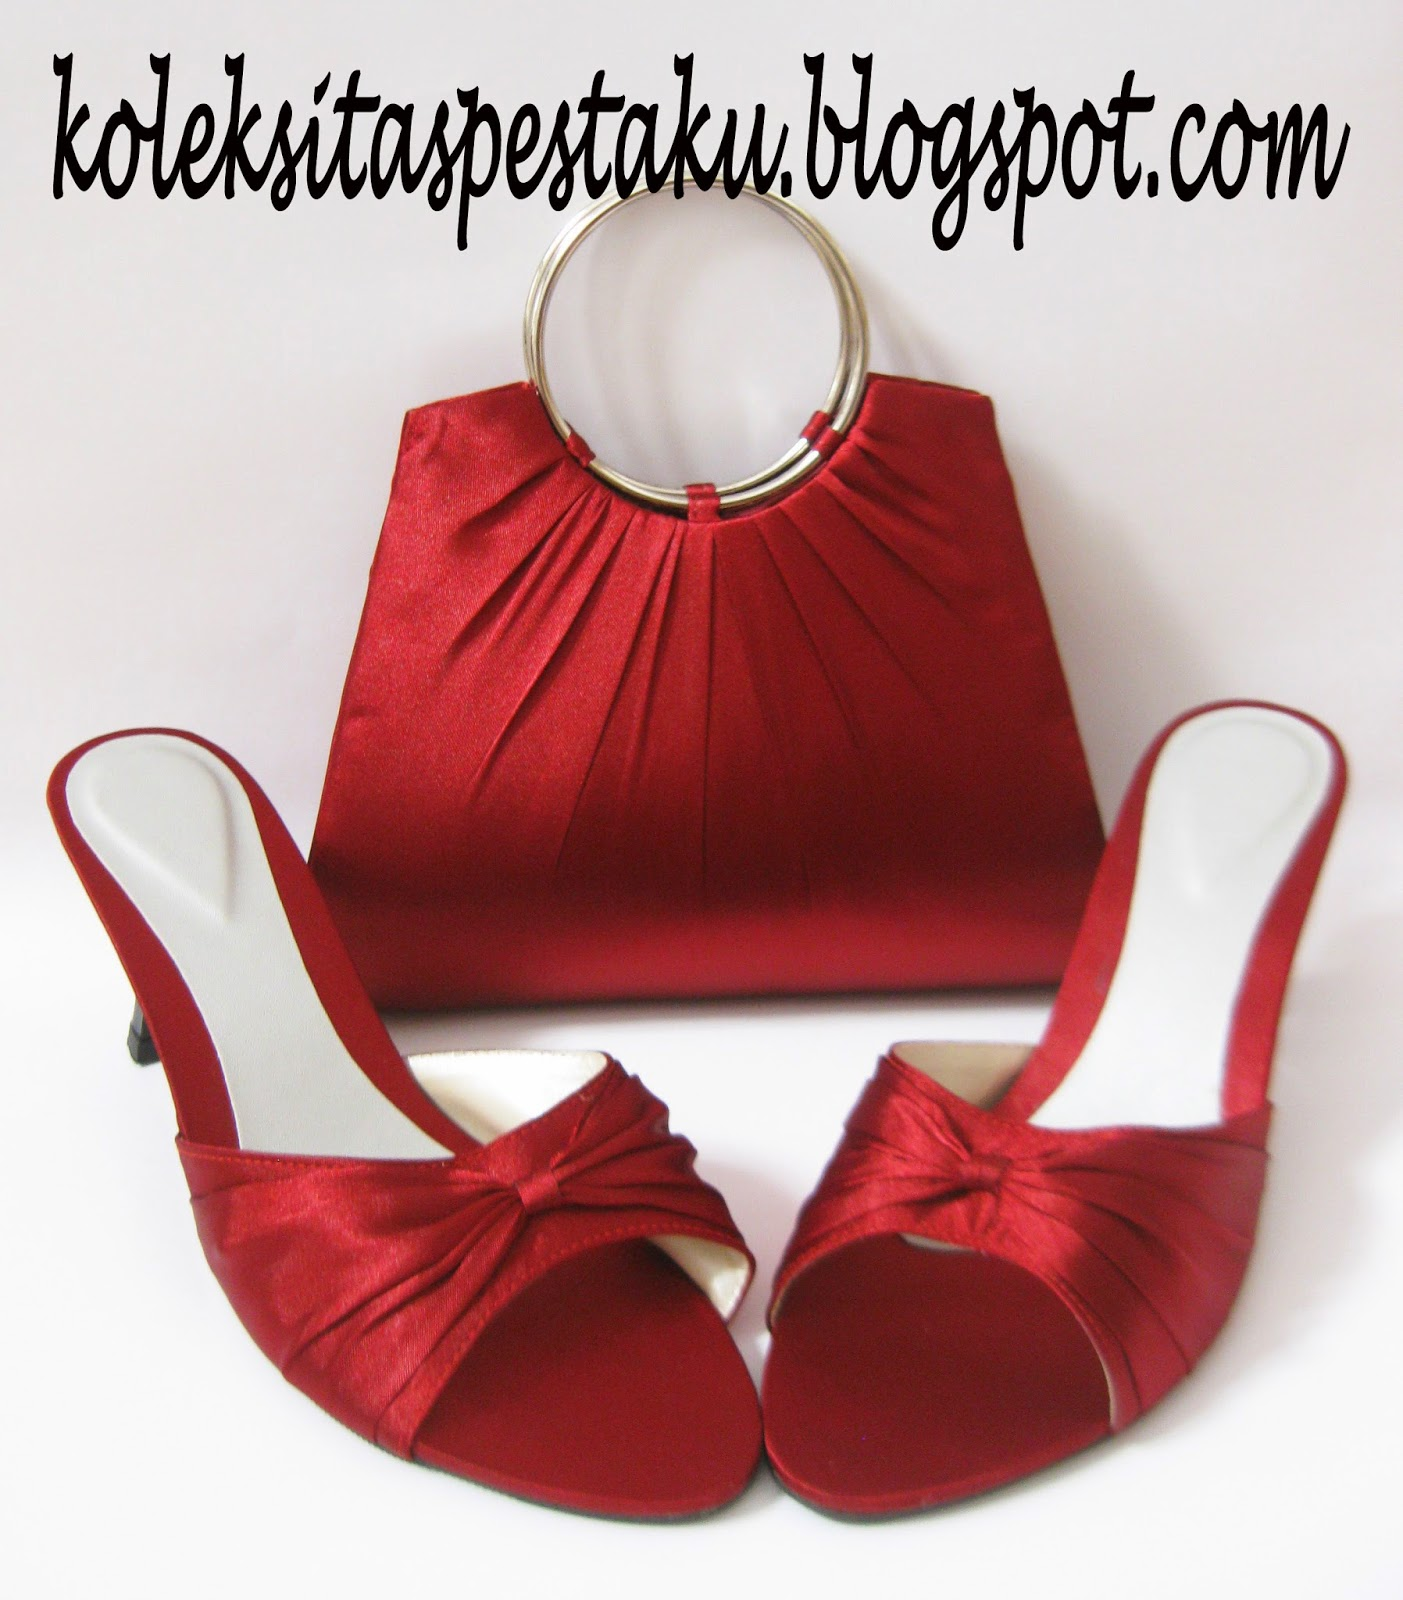 Serasi Warna Maroon Clutch Bag Tas Pesta dan Slop Pesta Ring Silver